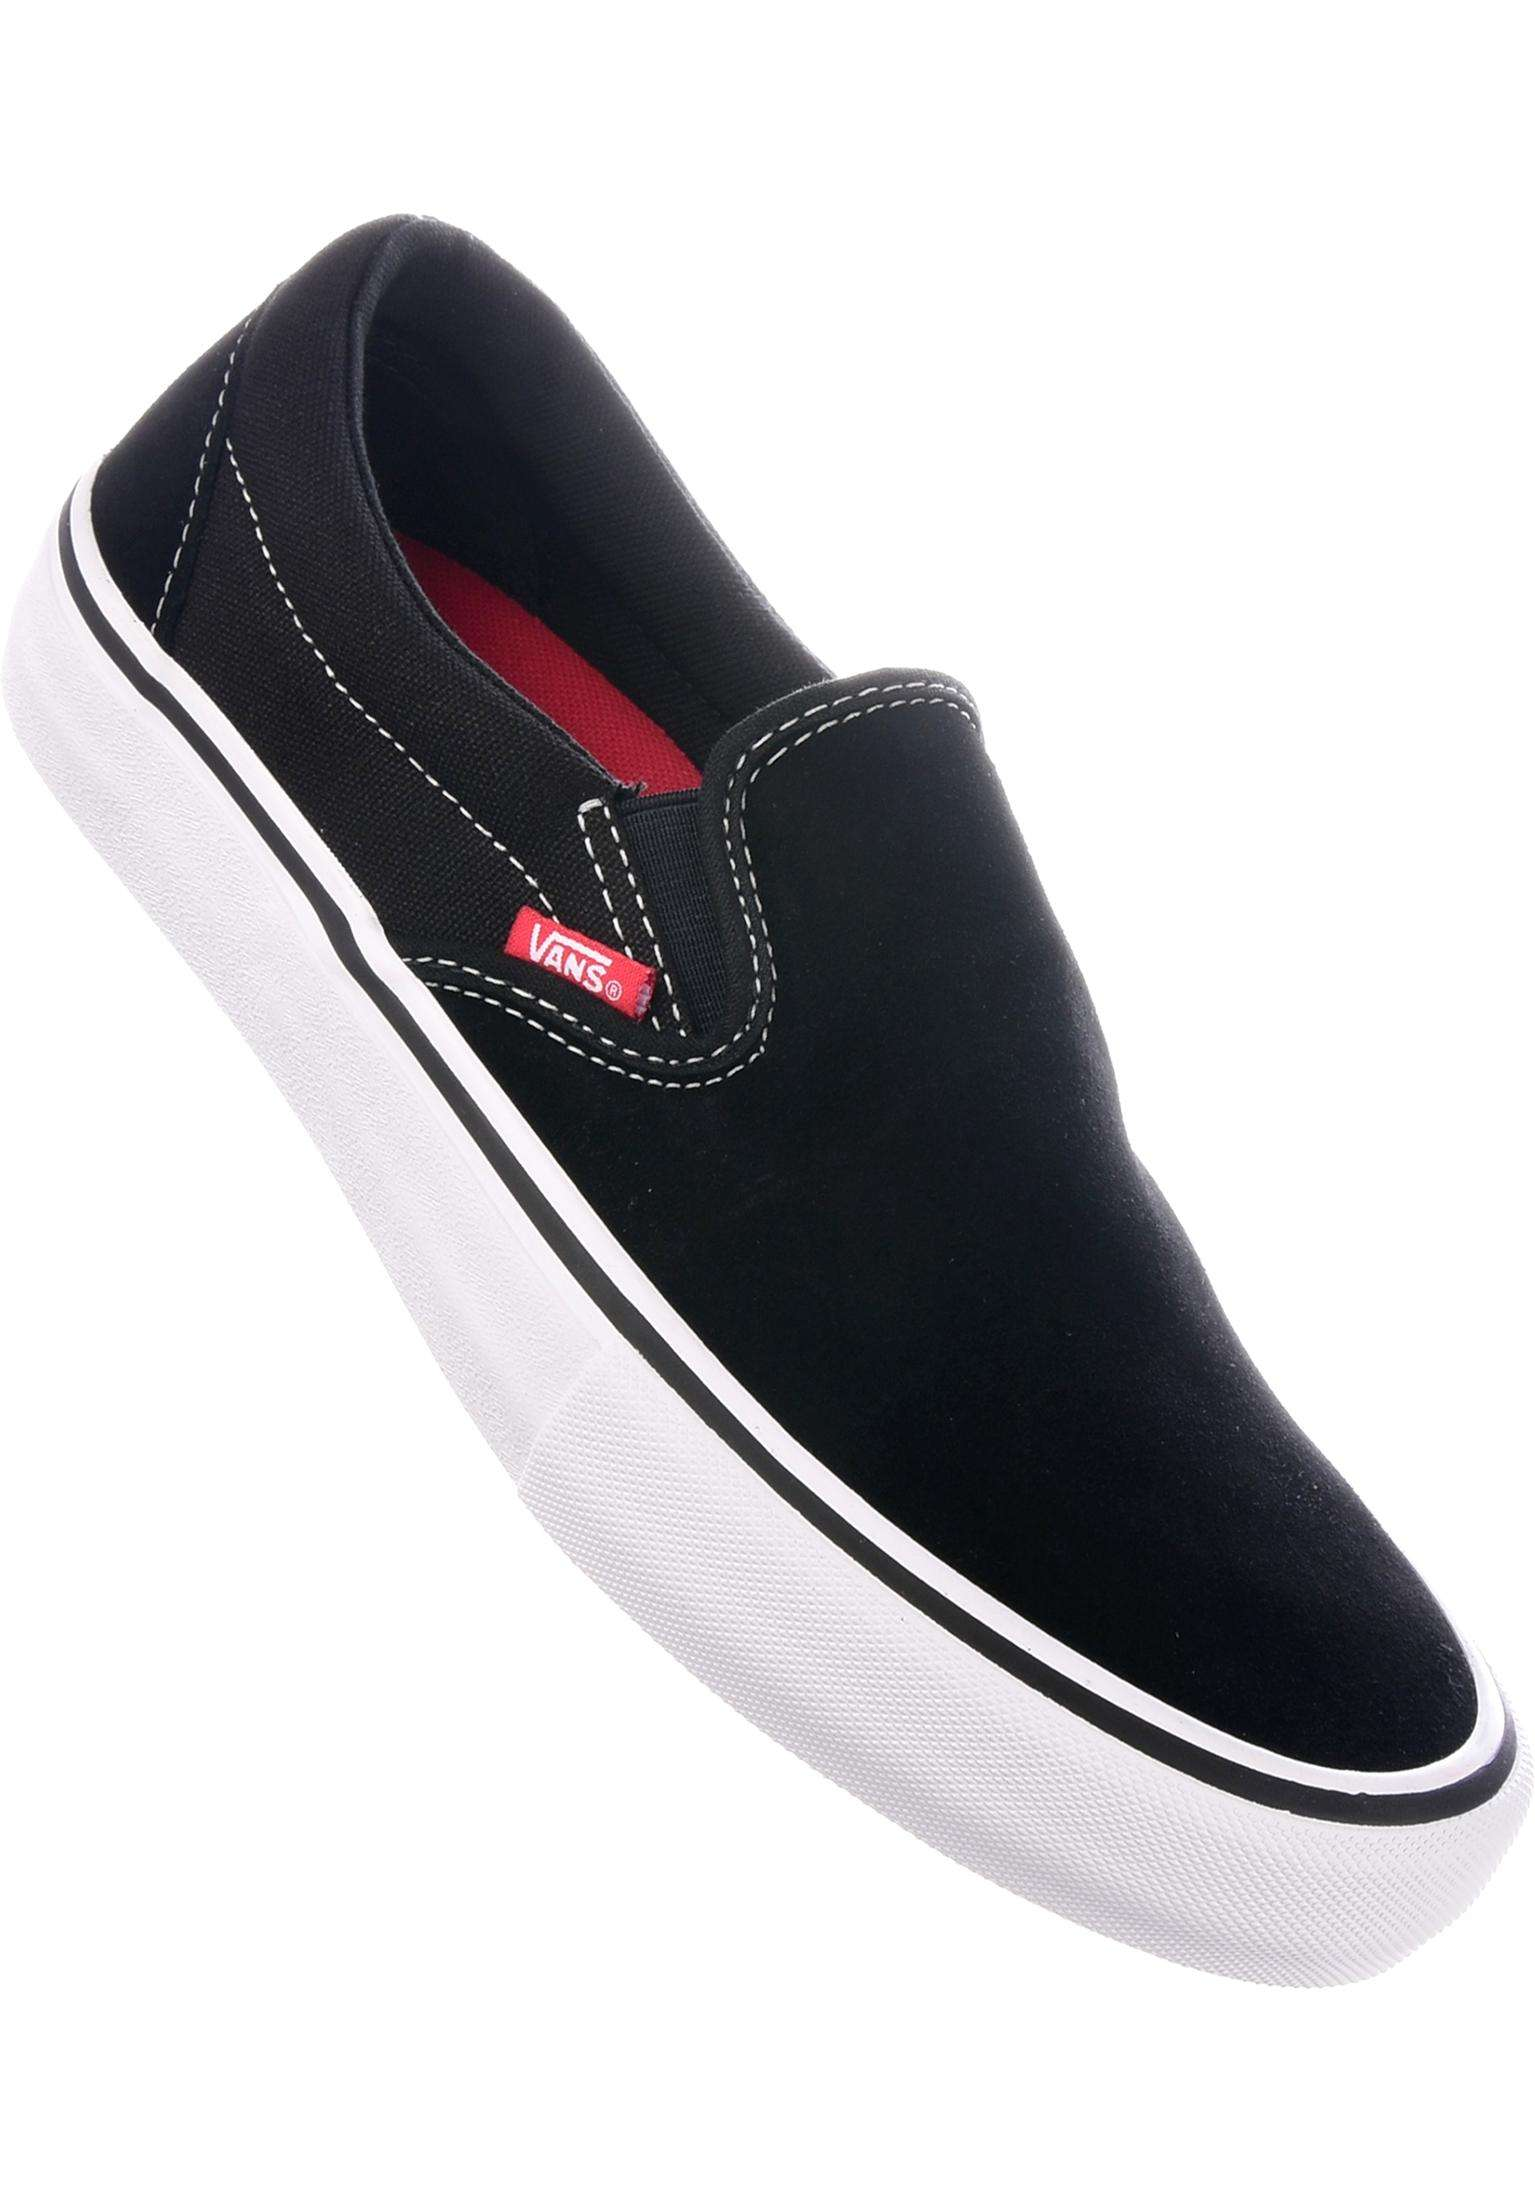 92828b42bb Slip-On Pro Vans All Shoes in black-white-gum for Men